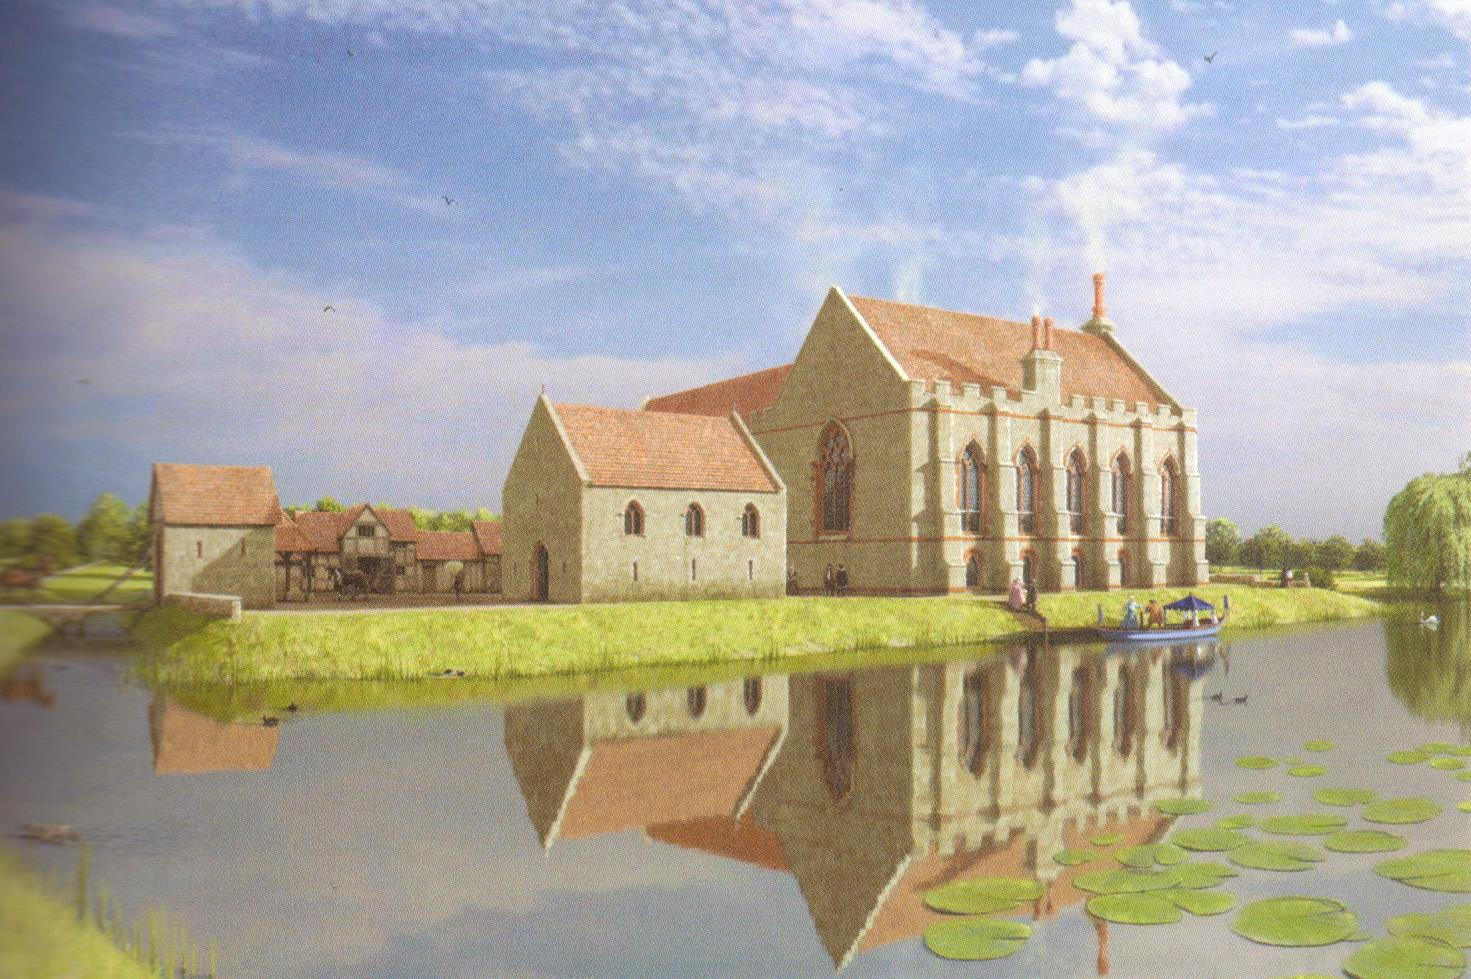 Reconstruction of Caludon Castle